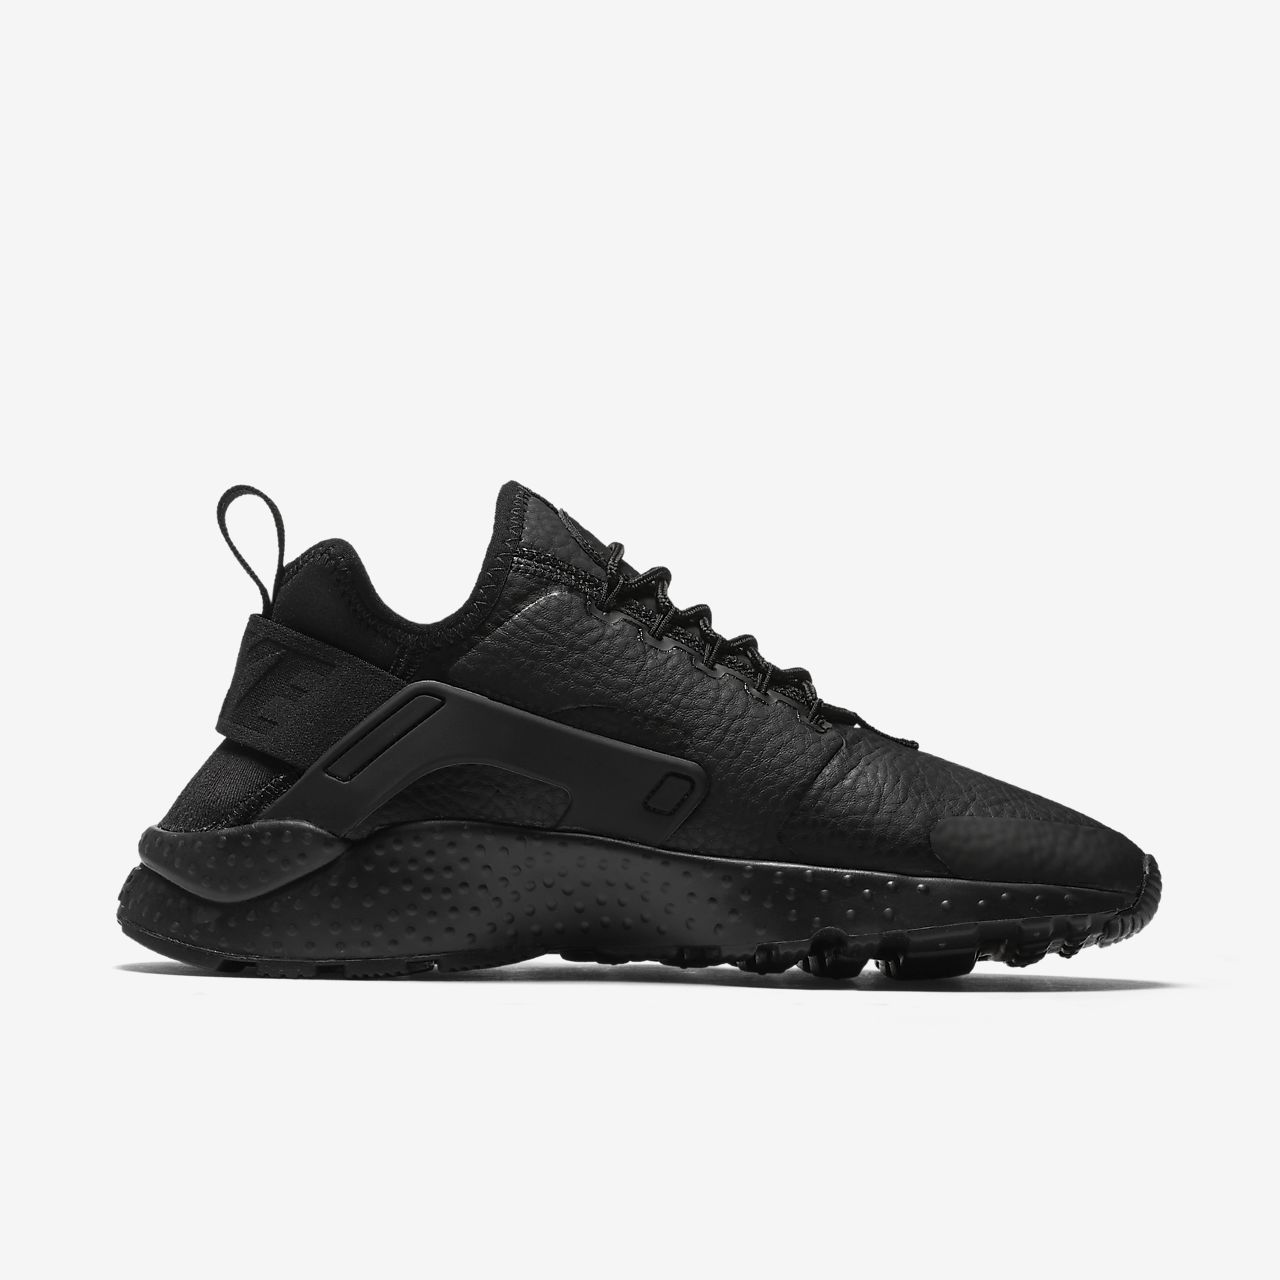 ... Nike Beautiful x Air Huarache Ultra Premium Women's Shoe